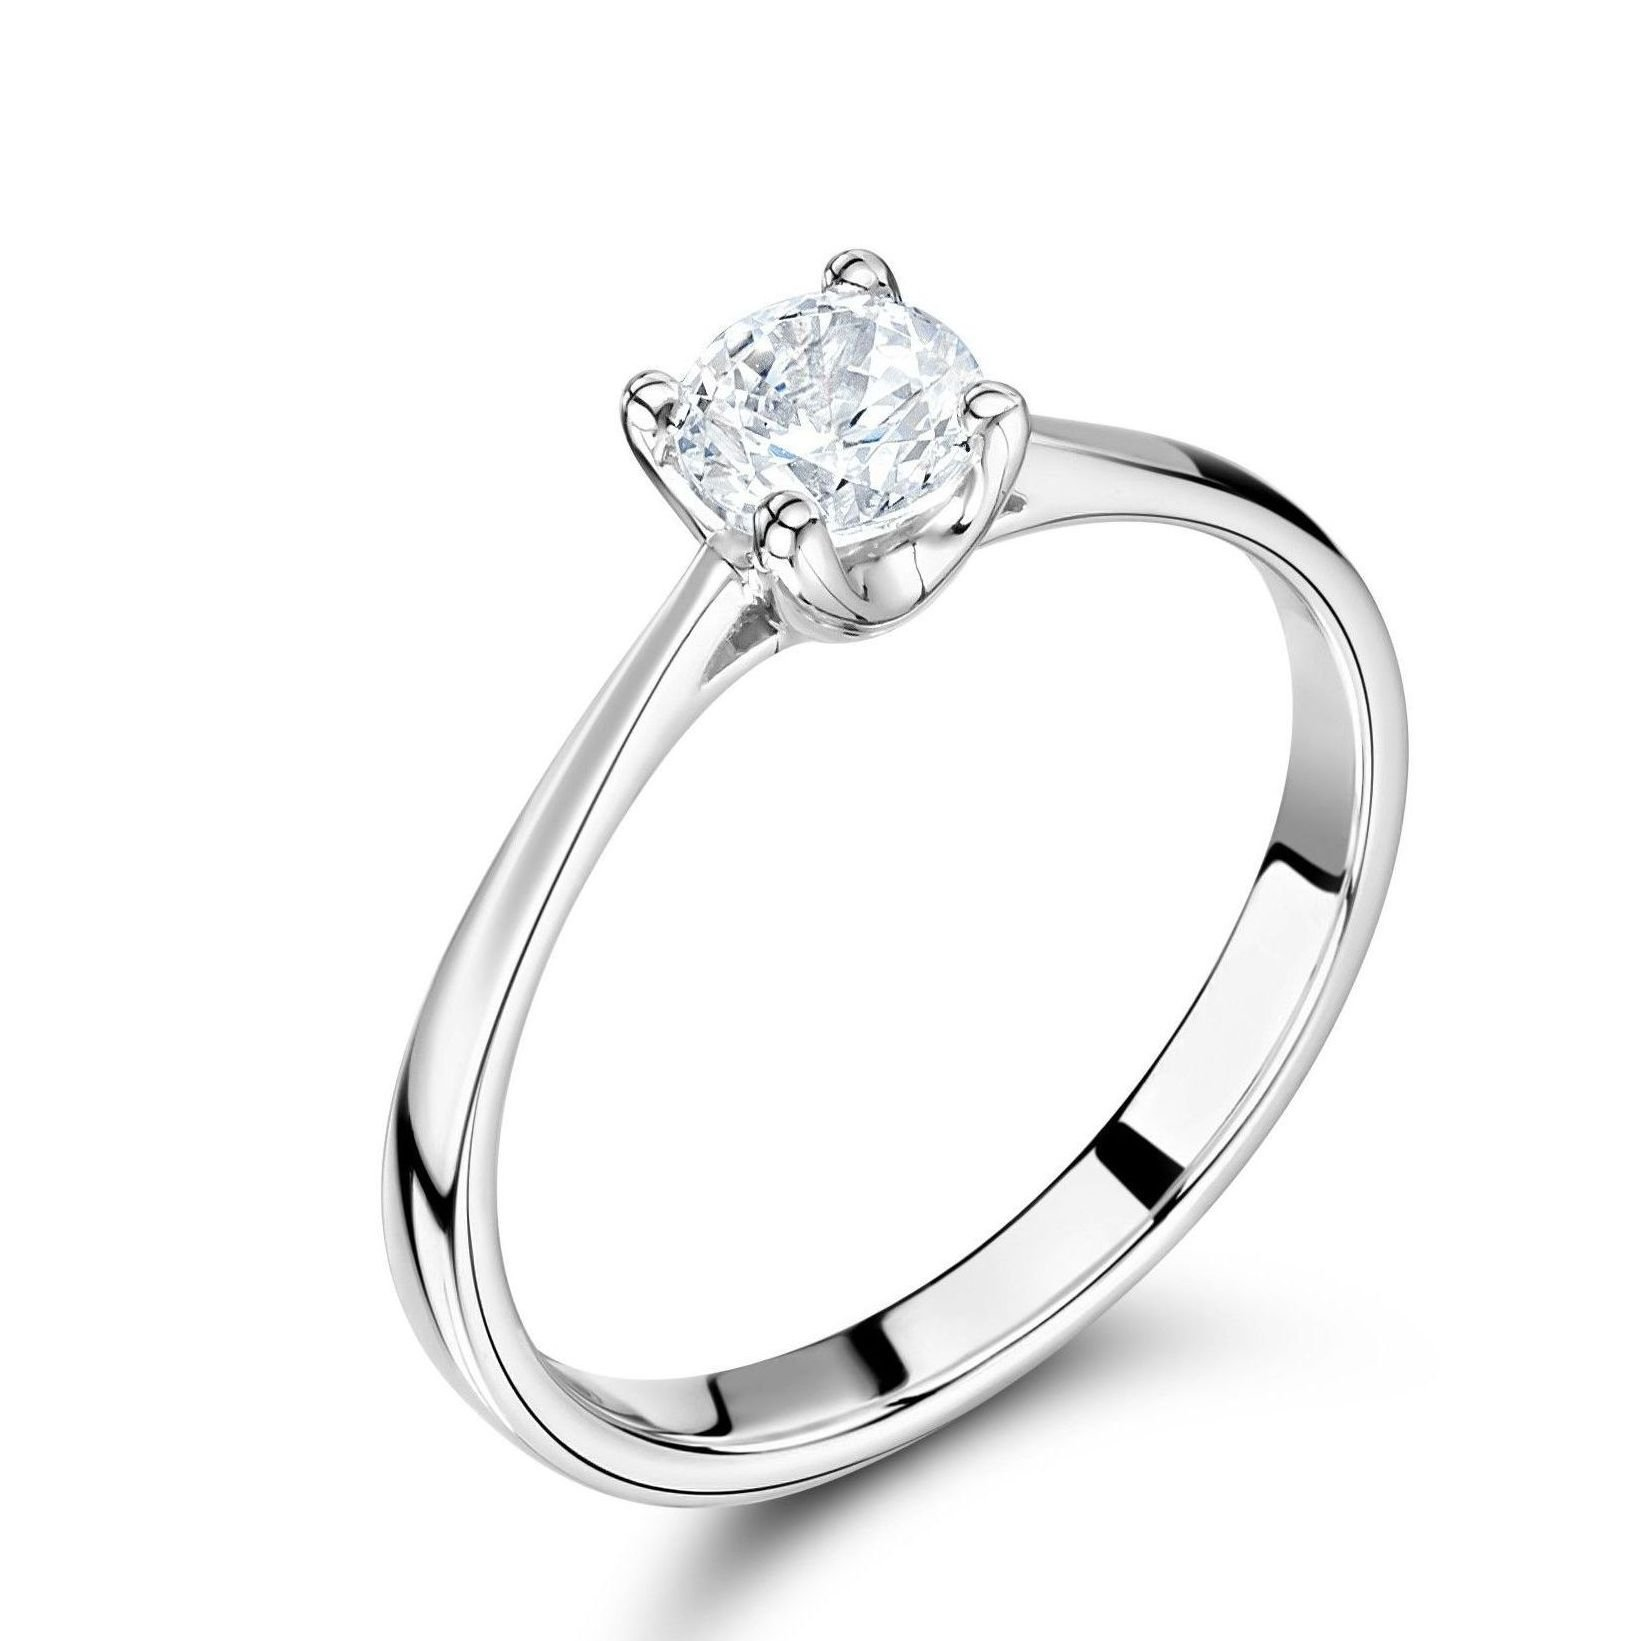 4 Prong Set Solitaire Lab Grown Diamond Engagement Ring